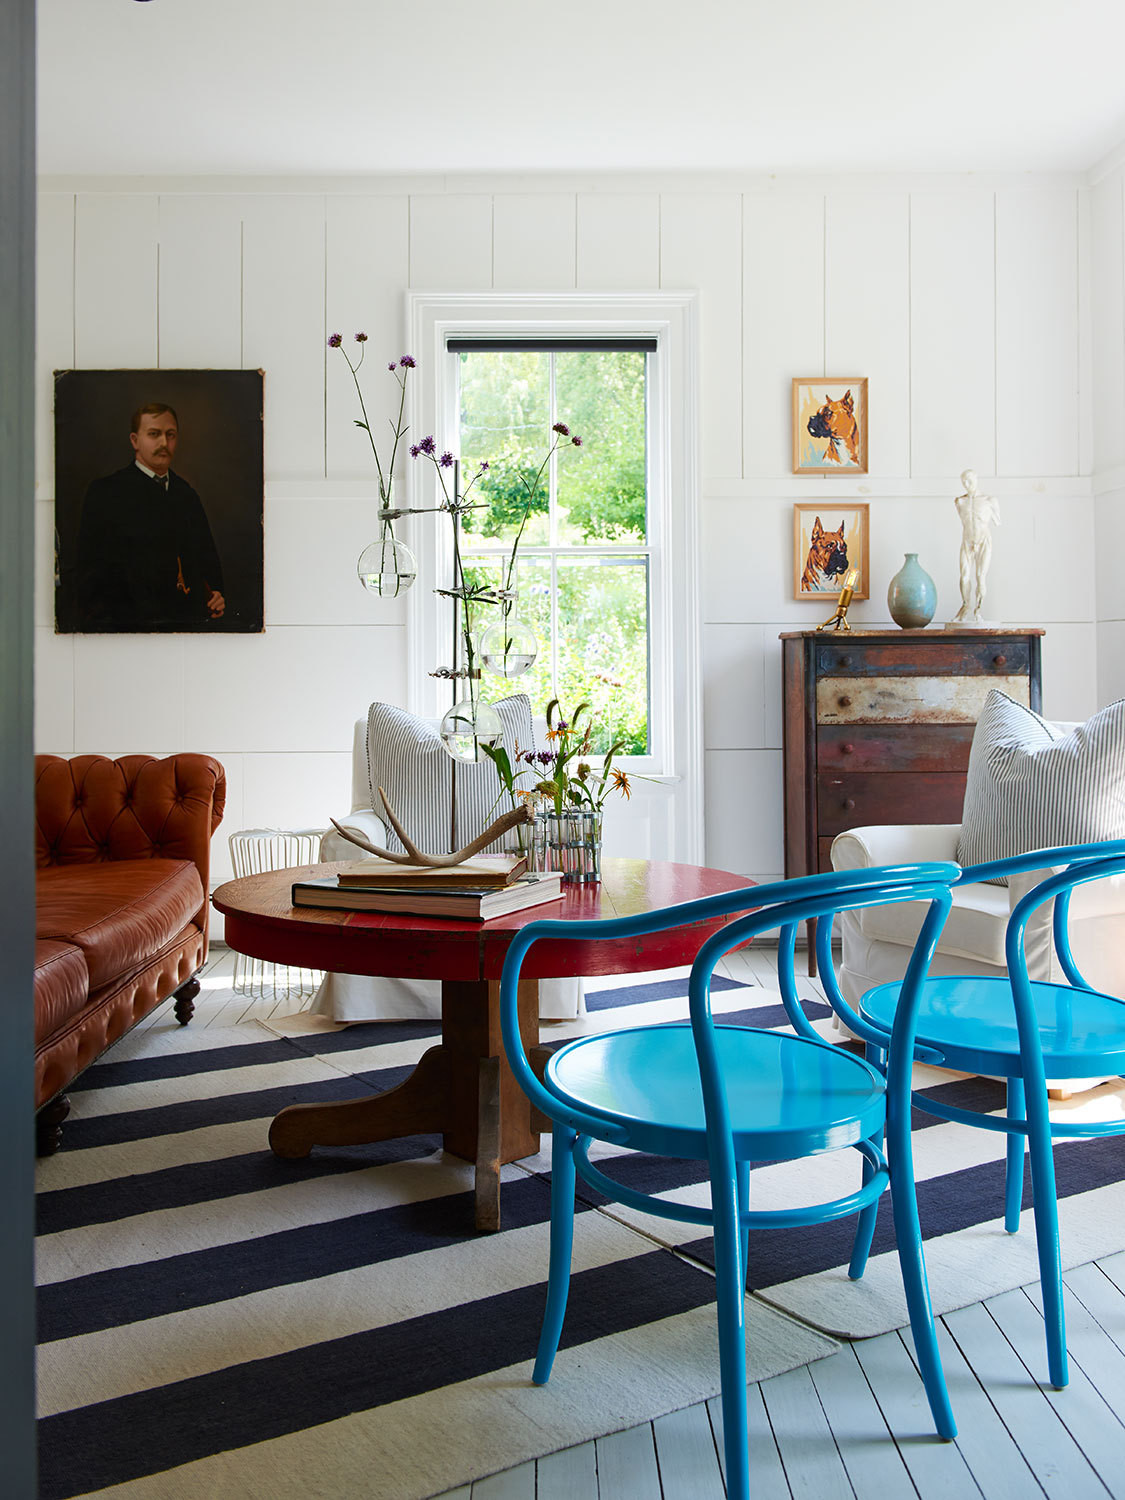 Primary hues and antique furnishings mix seamlessly in the living room.